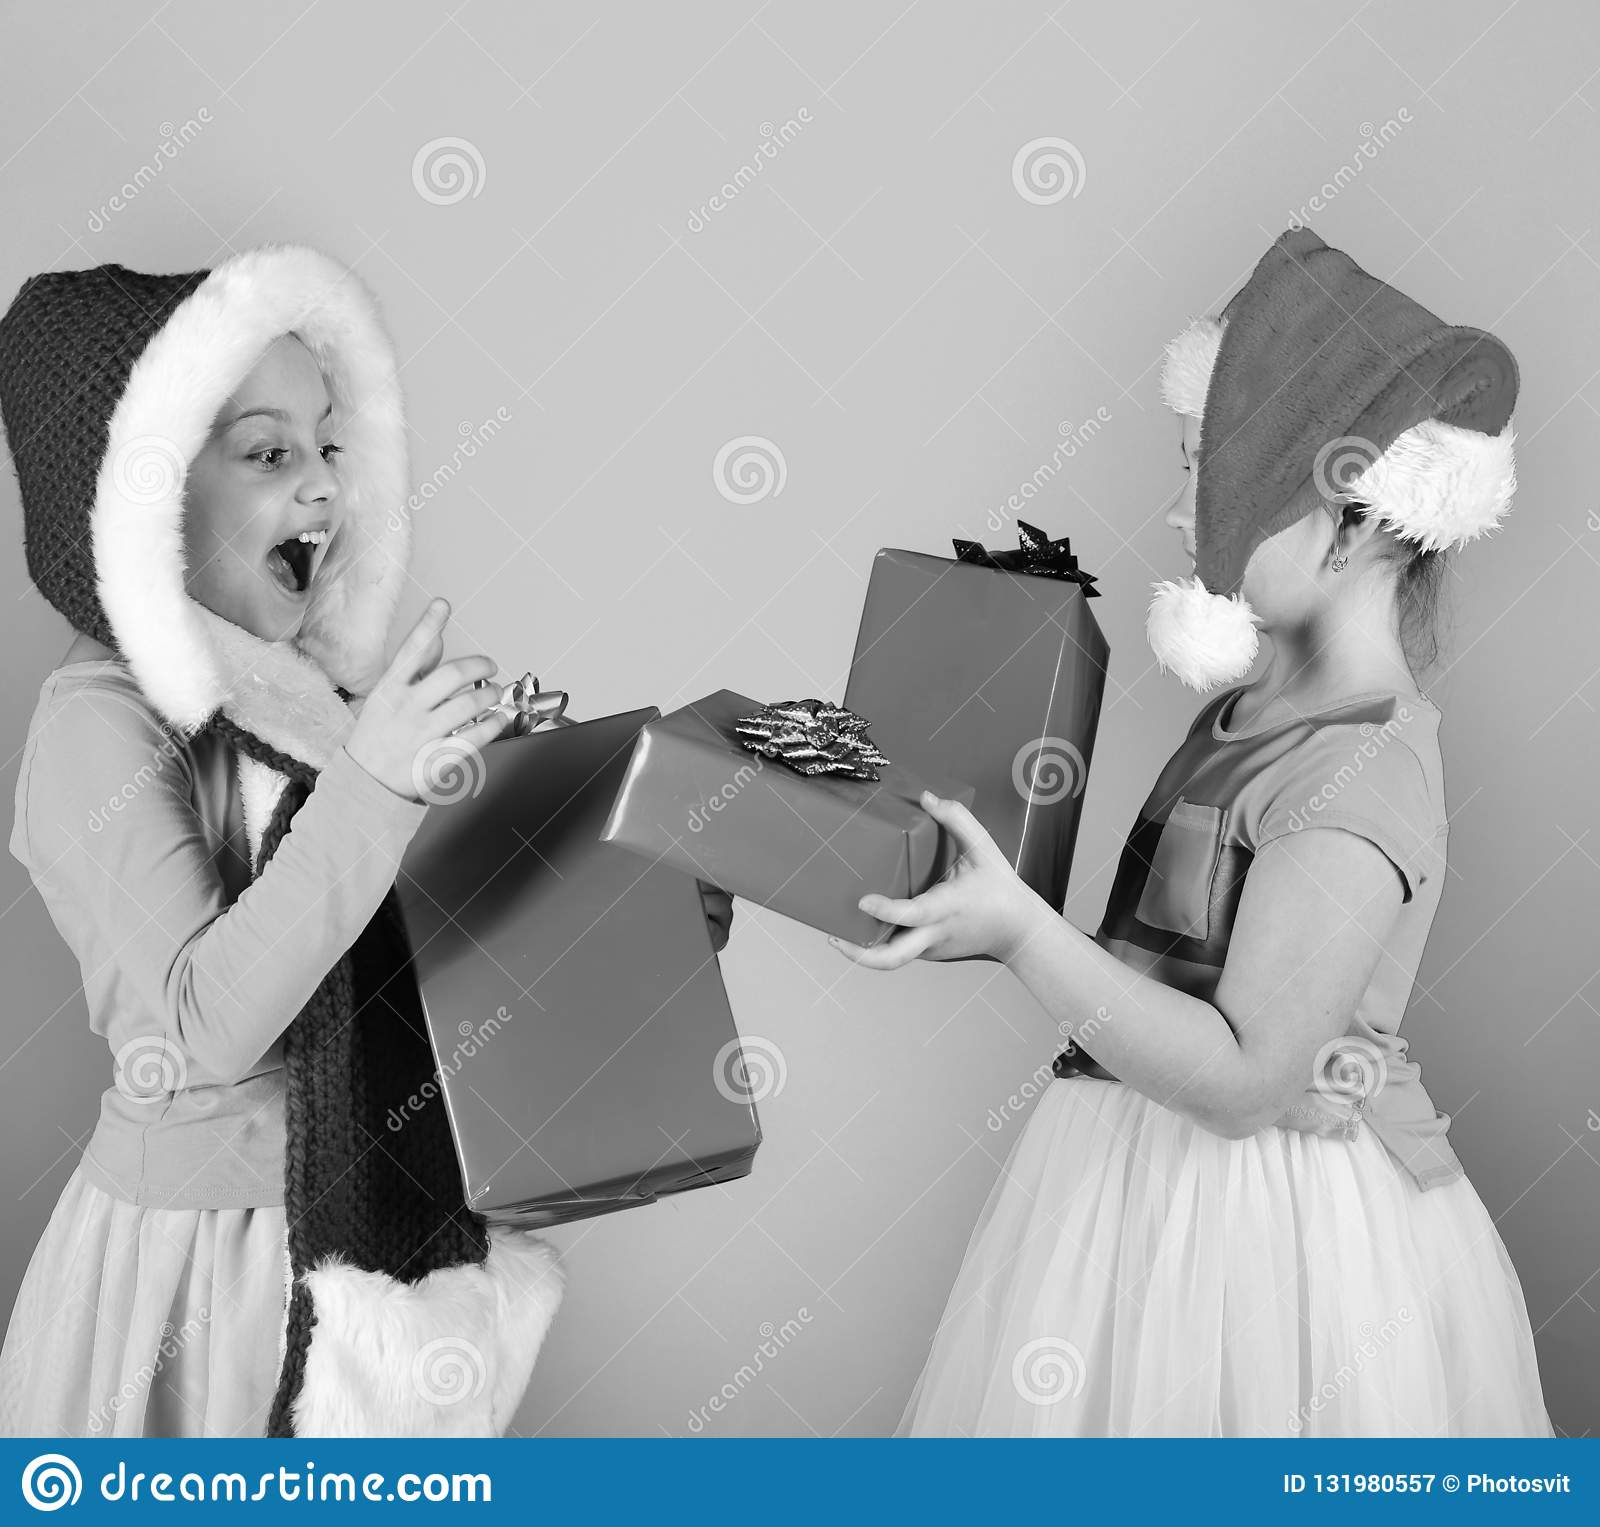 Partying and holiday concept. Children with surprised faces